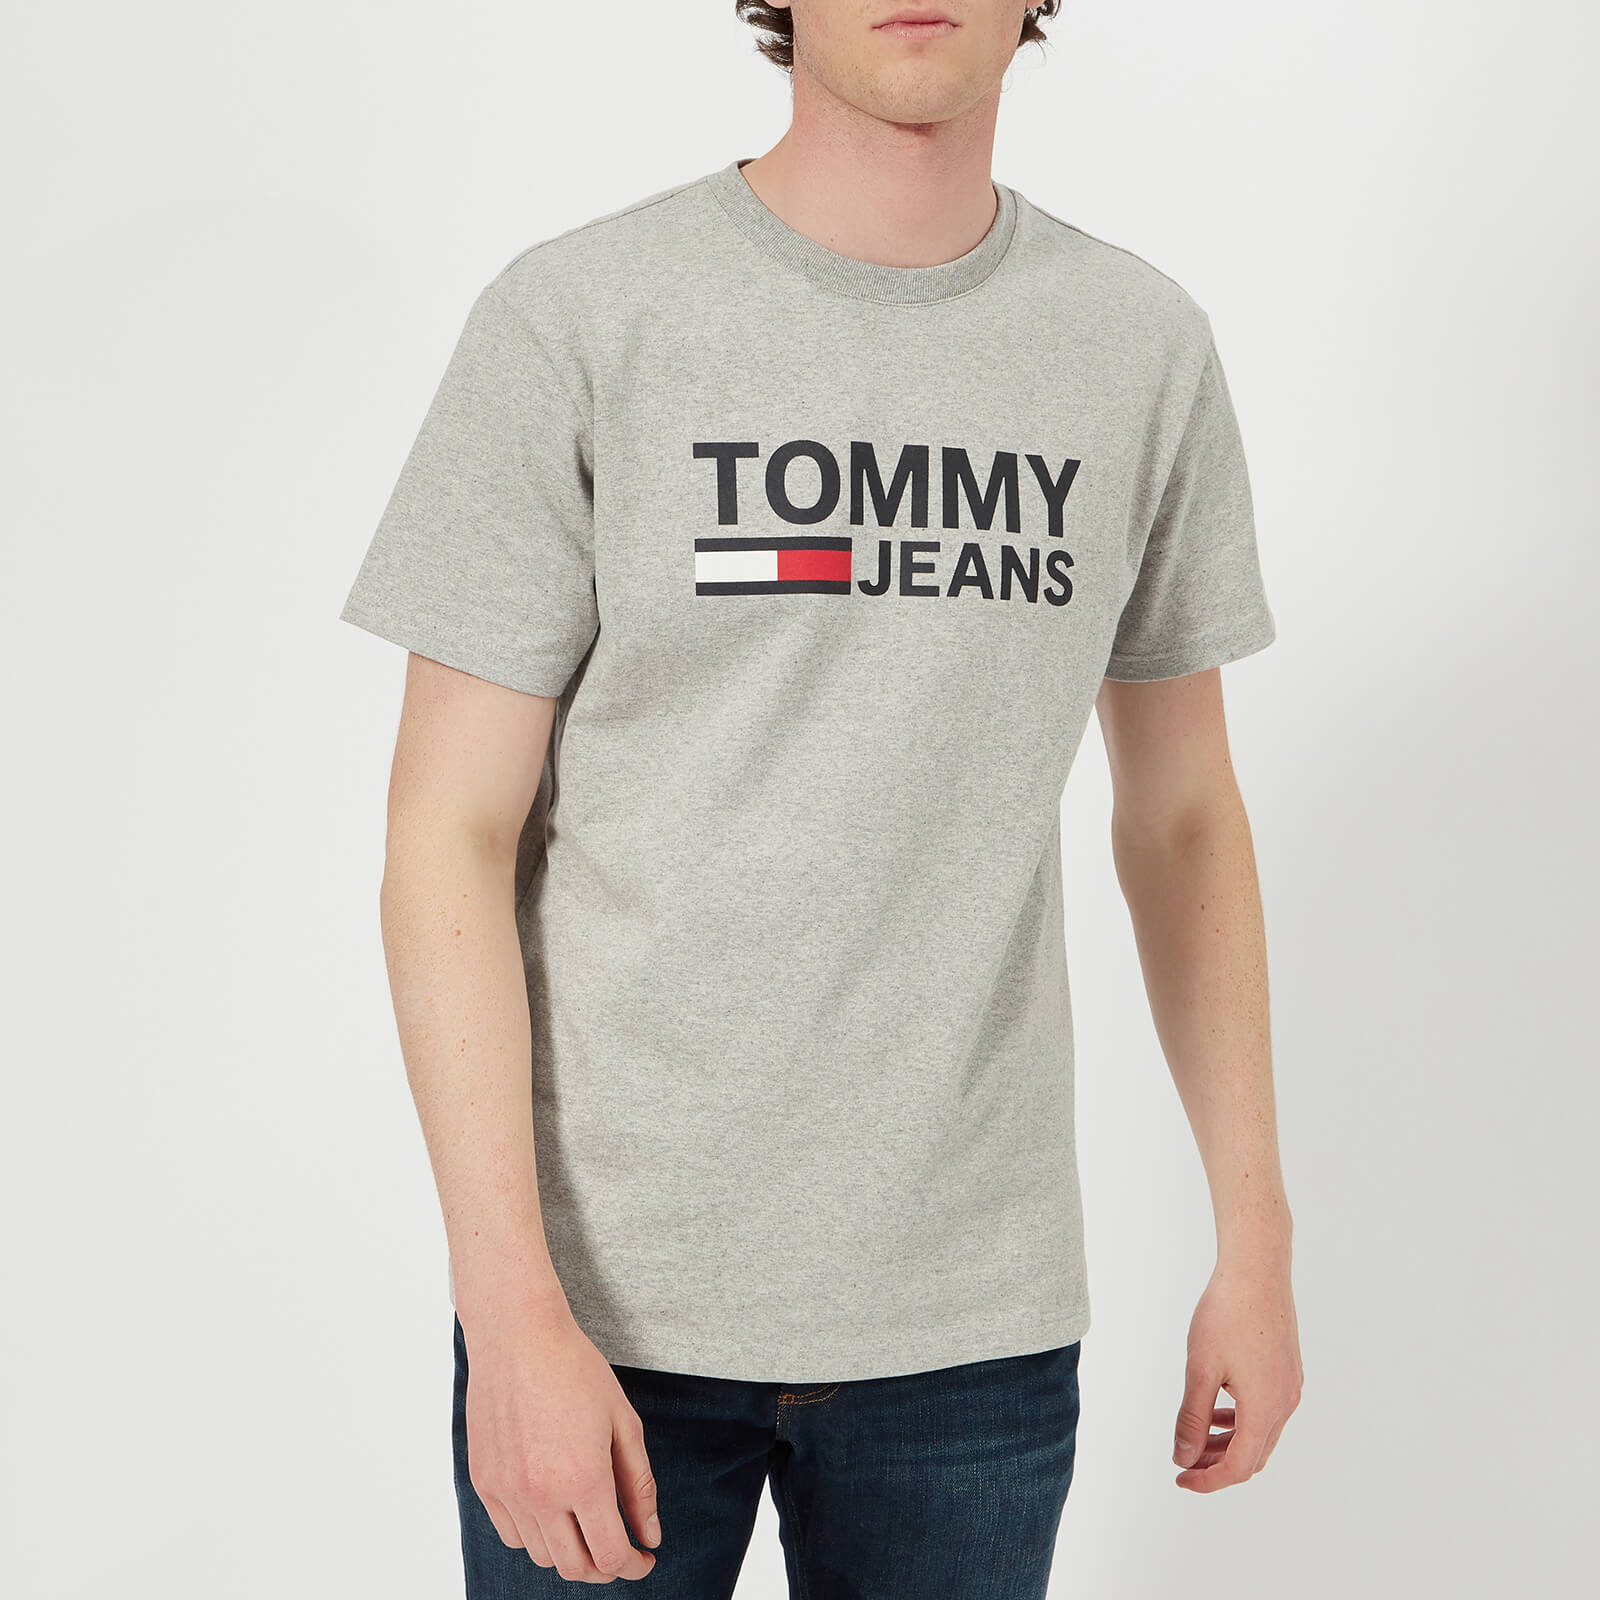 c3639b8781 Tommy Jeans Men s Tommy Classic Logo T-Shirt - Light Grey Heather Clothing